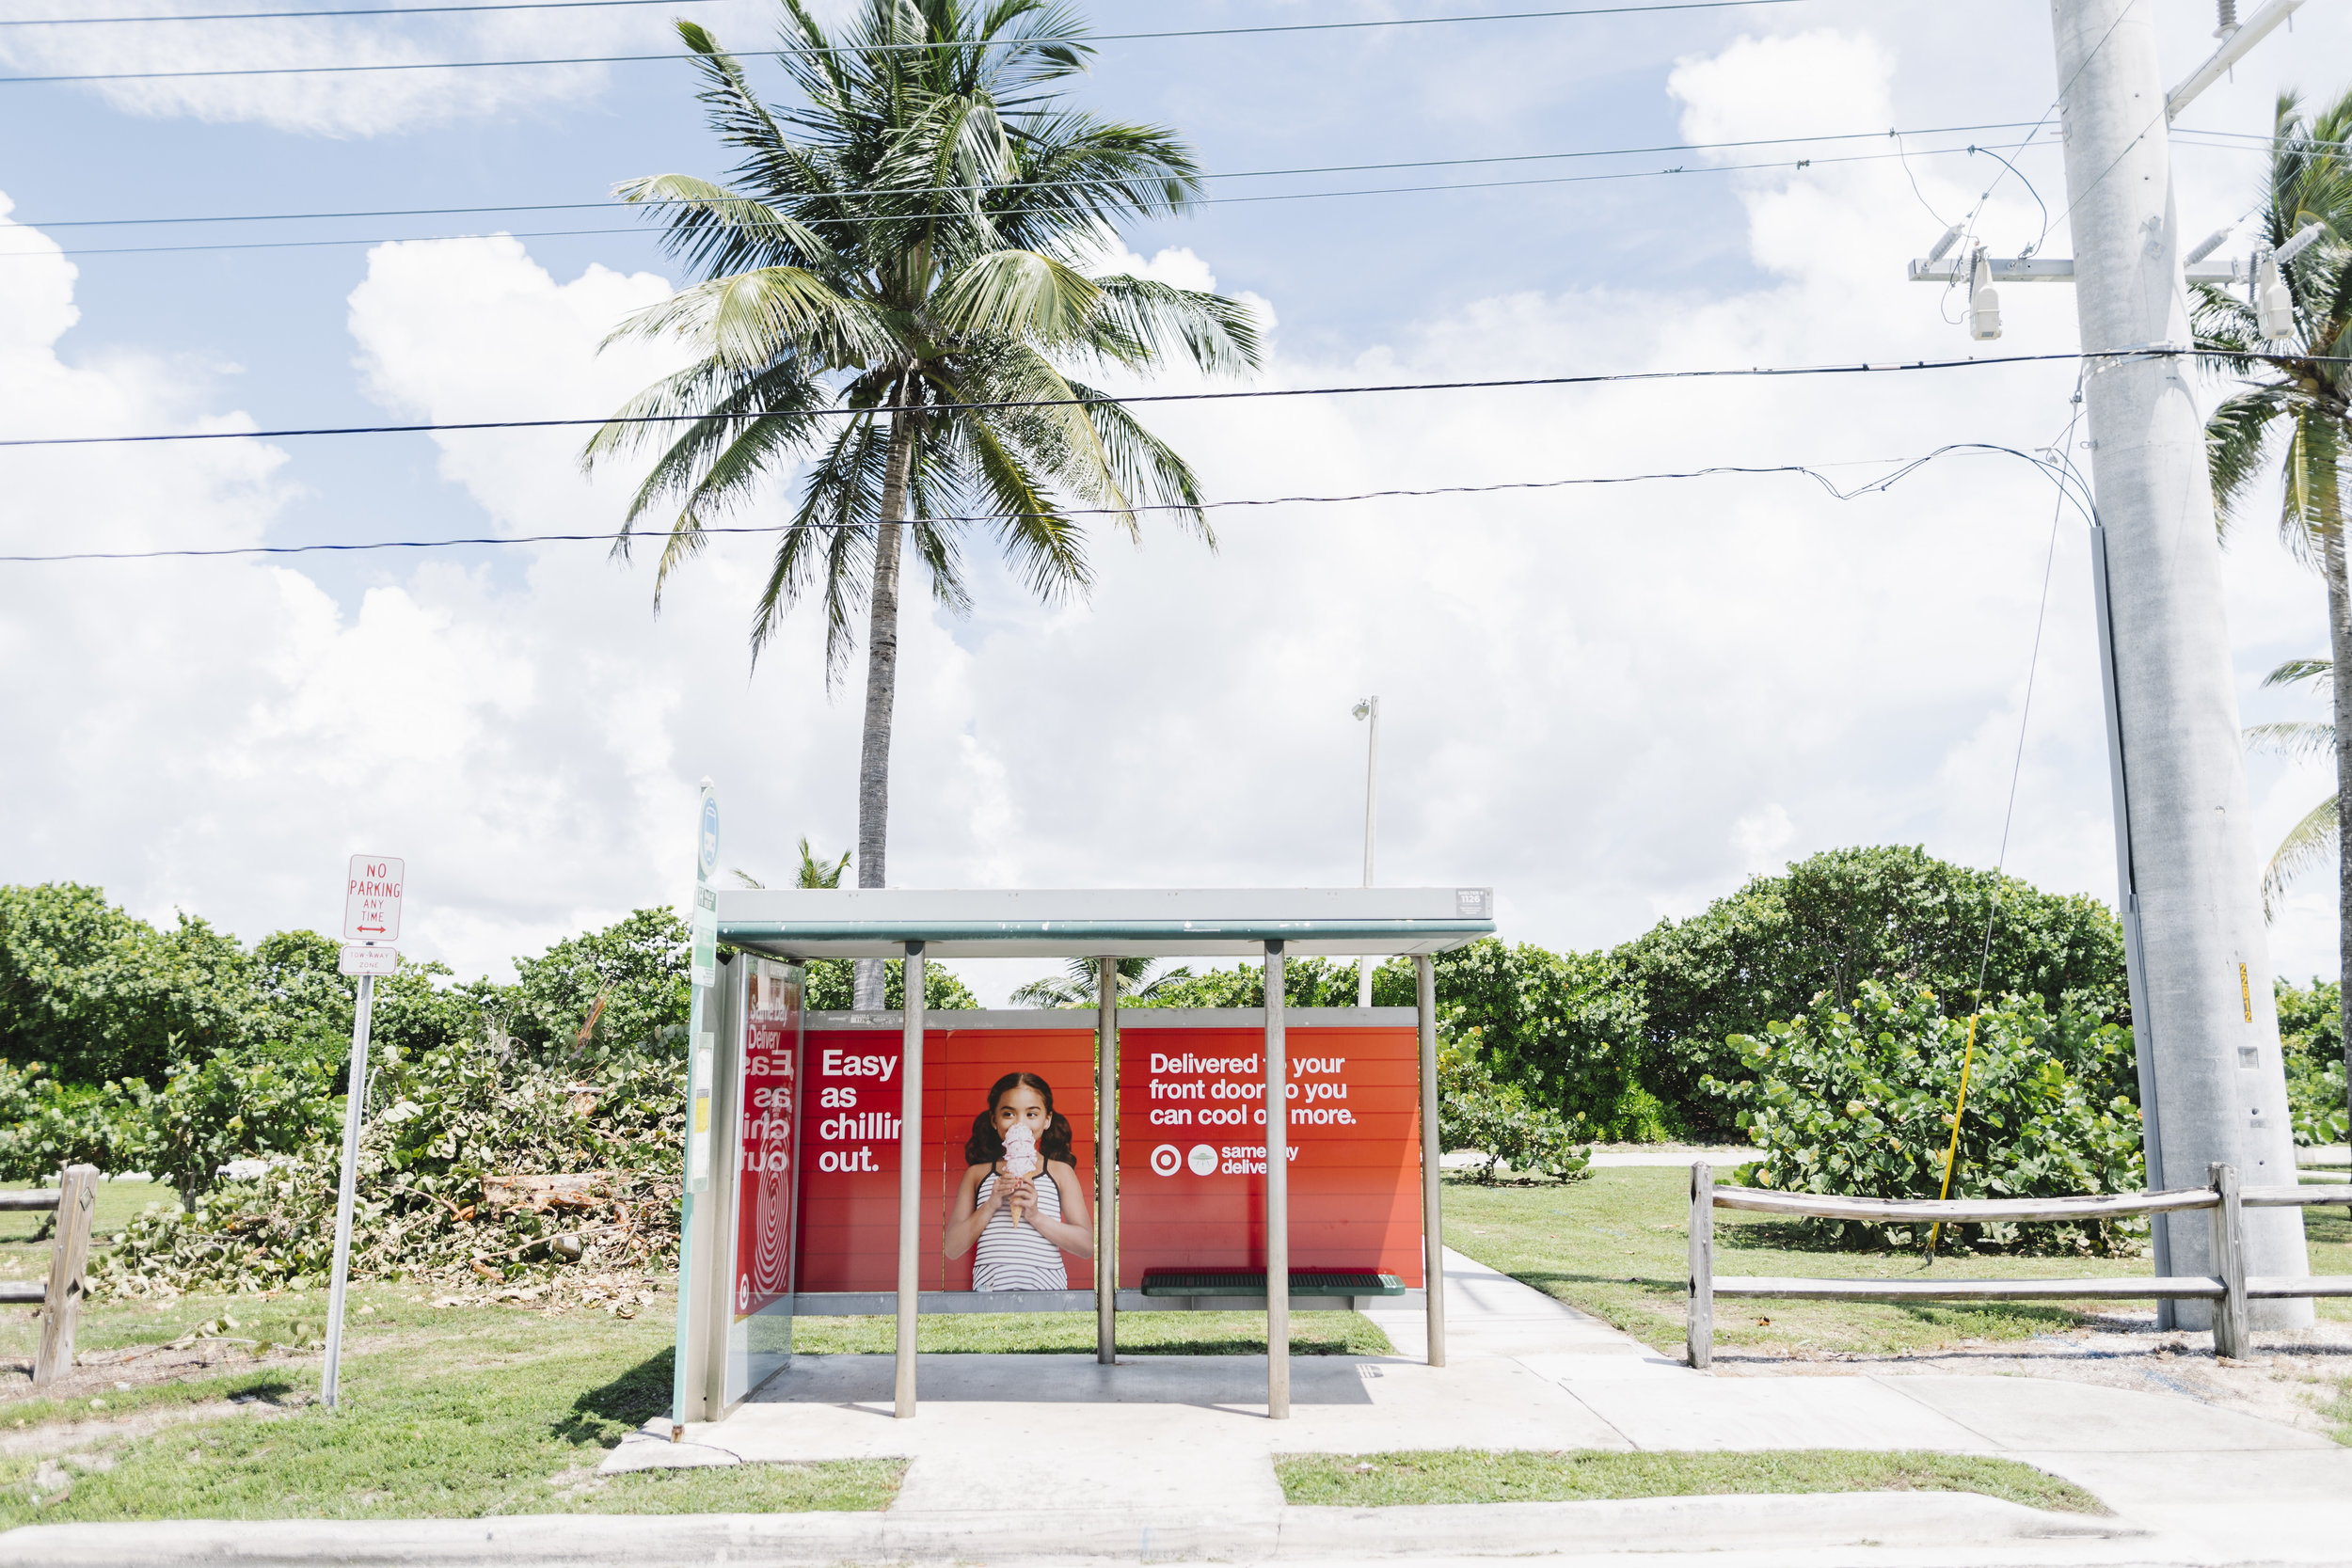 Target Drive Up Bus Shelter Miami.jpg